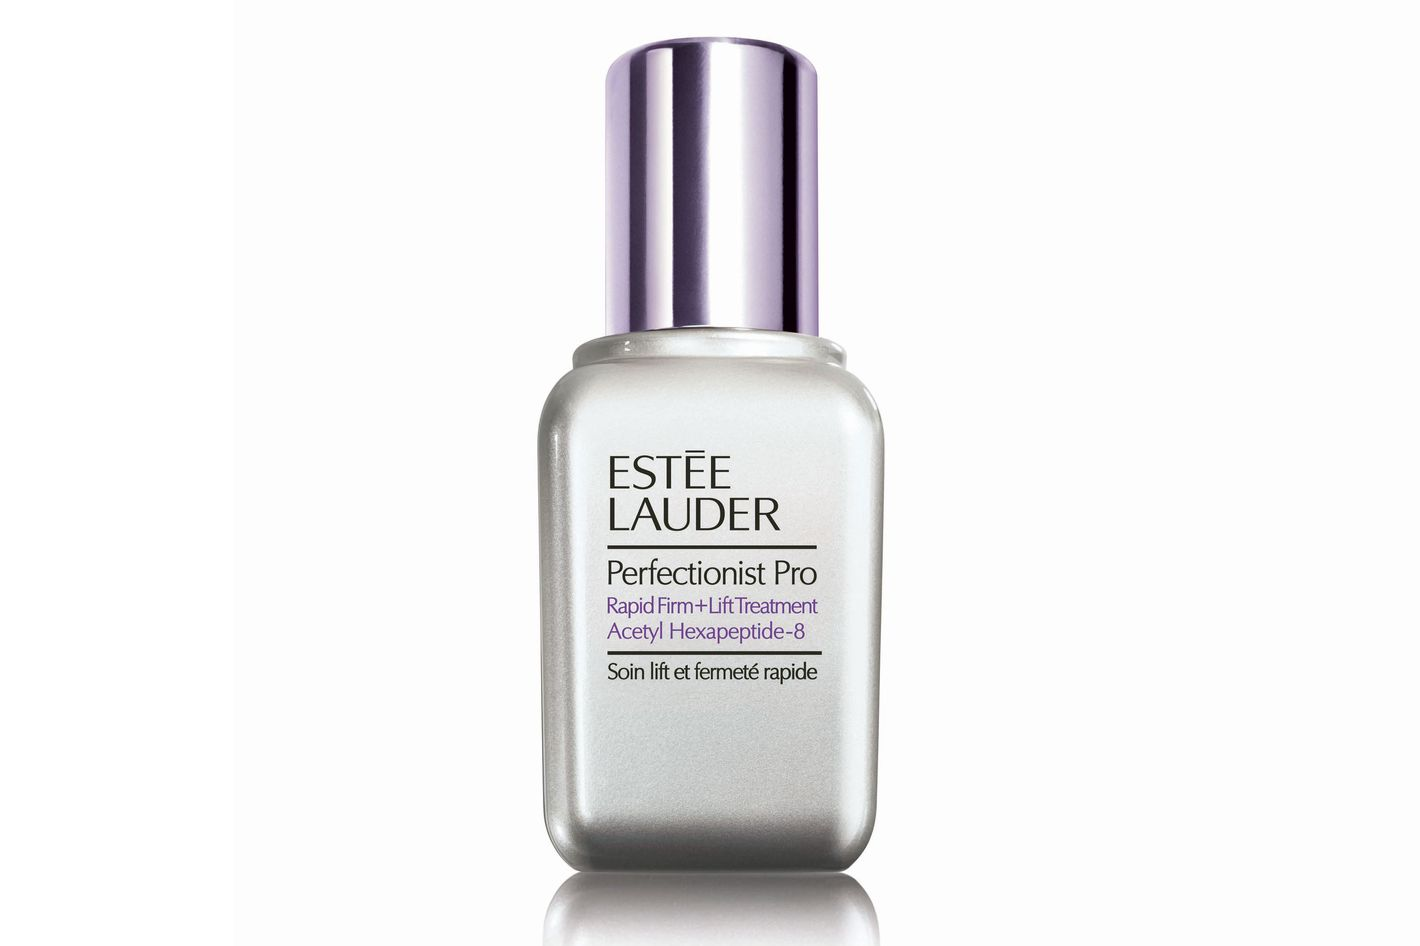 Perfectionist Pro Rapid Firm + Lift Treatment Acetyl Hexapeptide-8